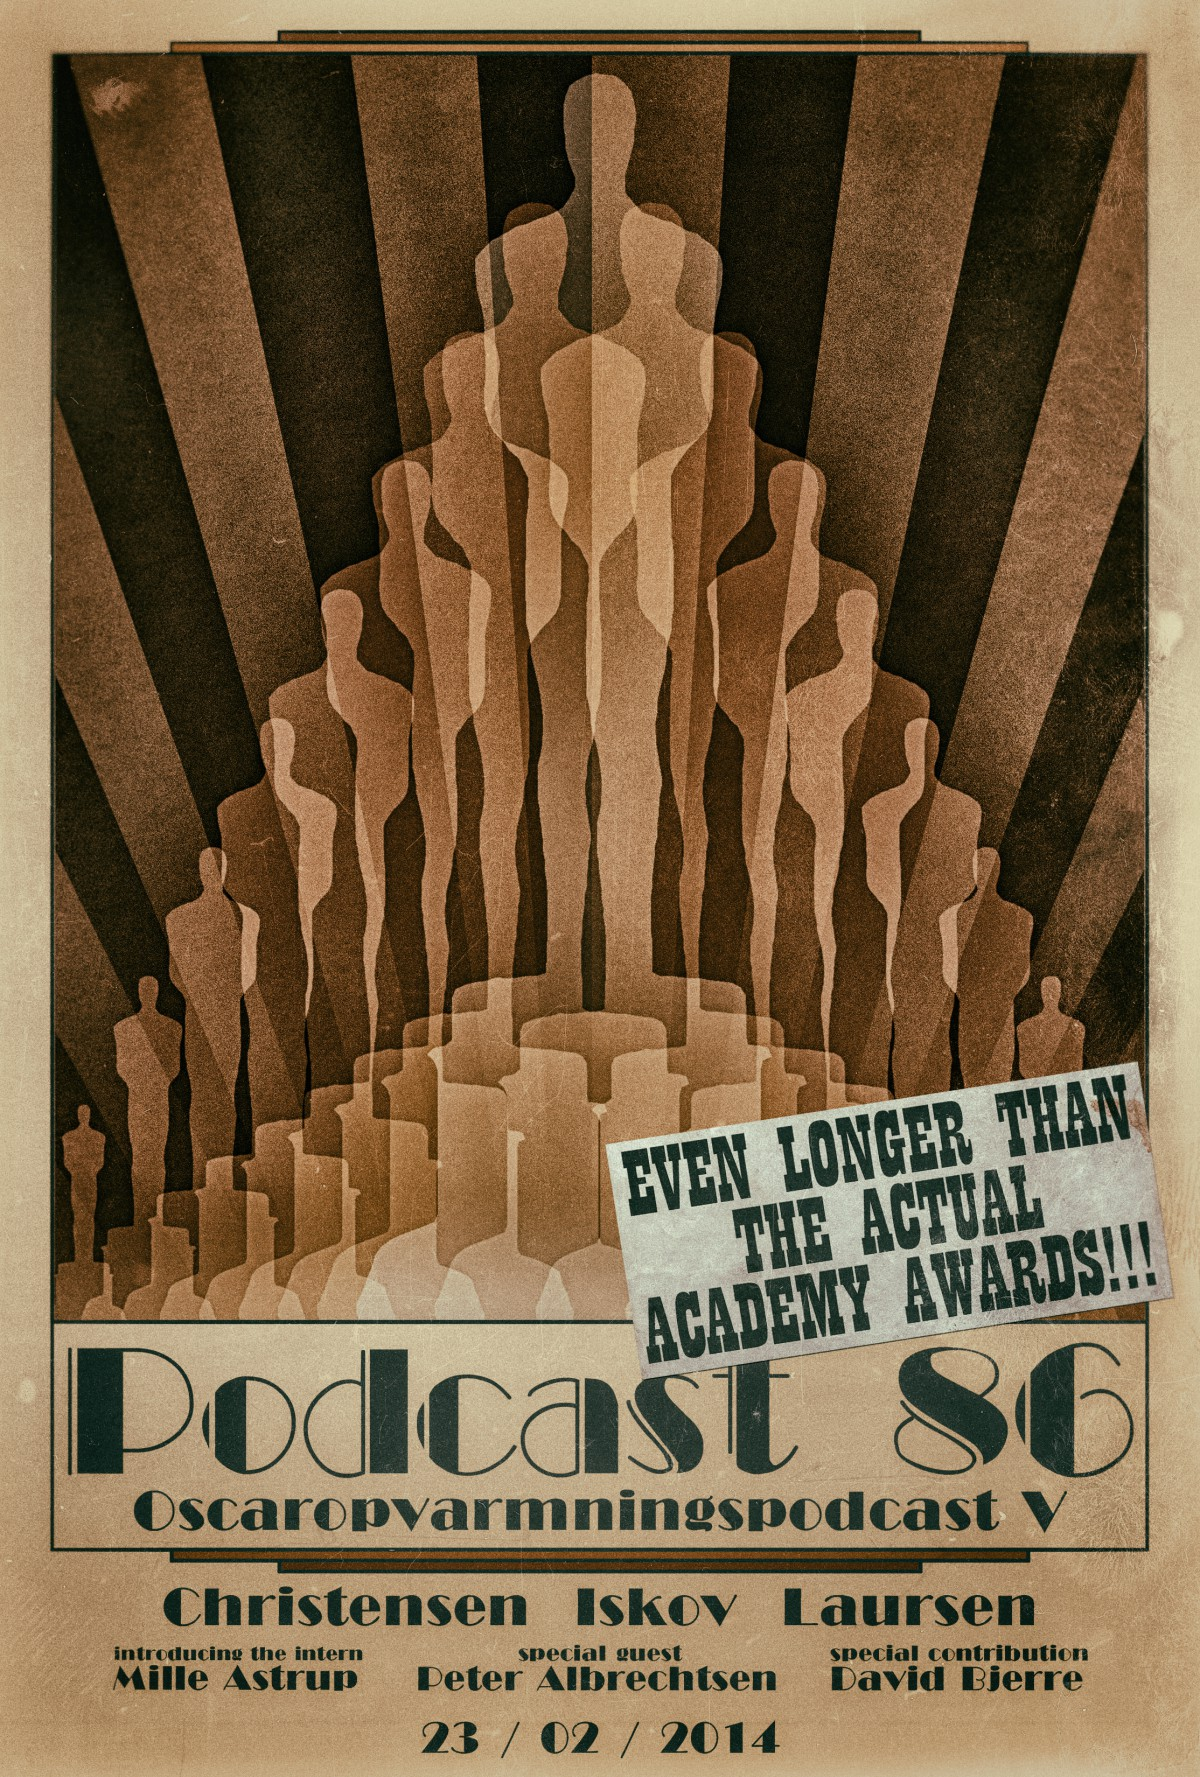 Poster-for-Podcast-86.5-new.jpg